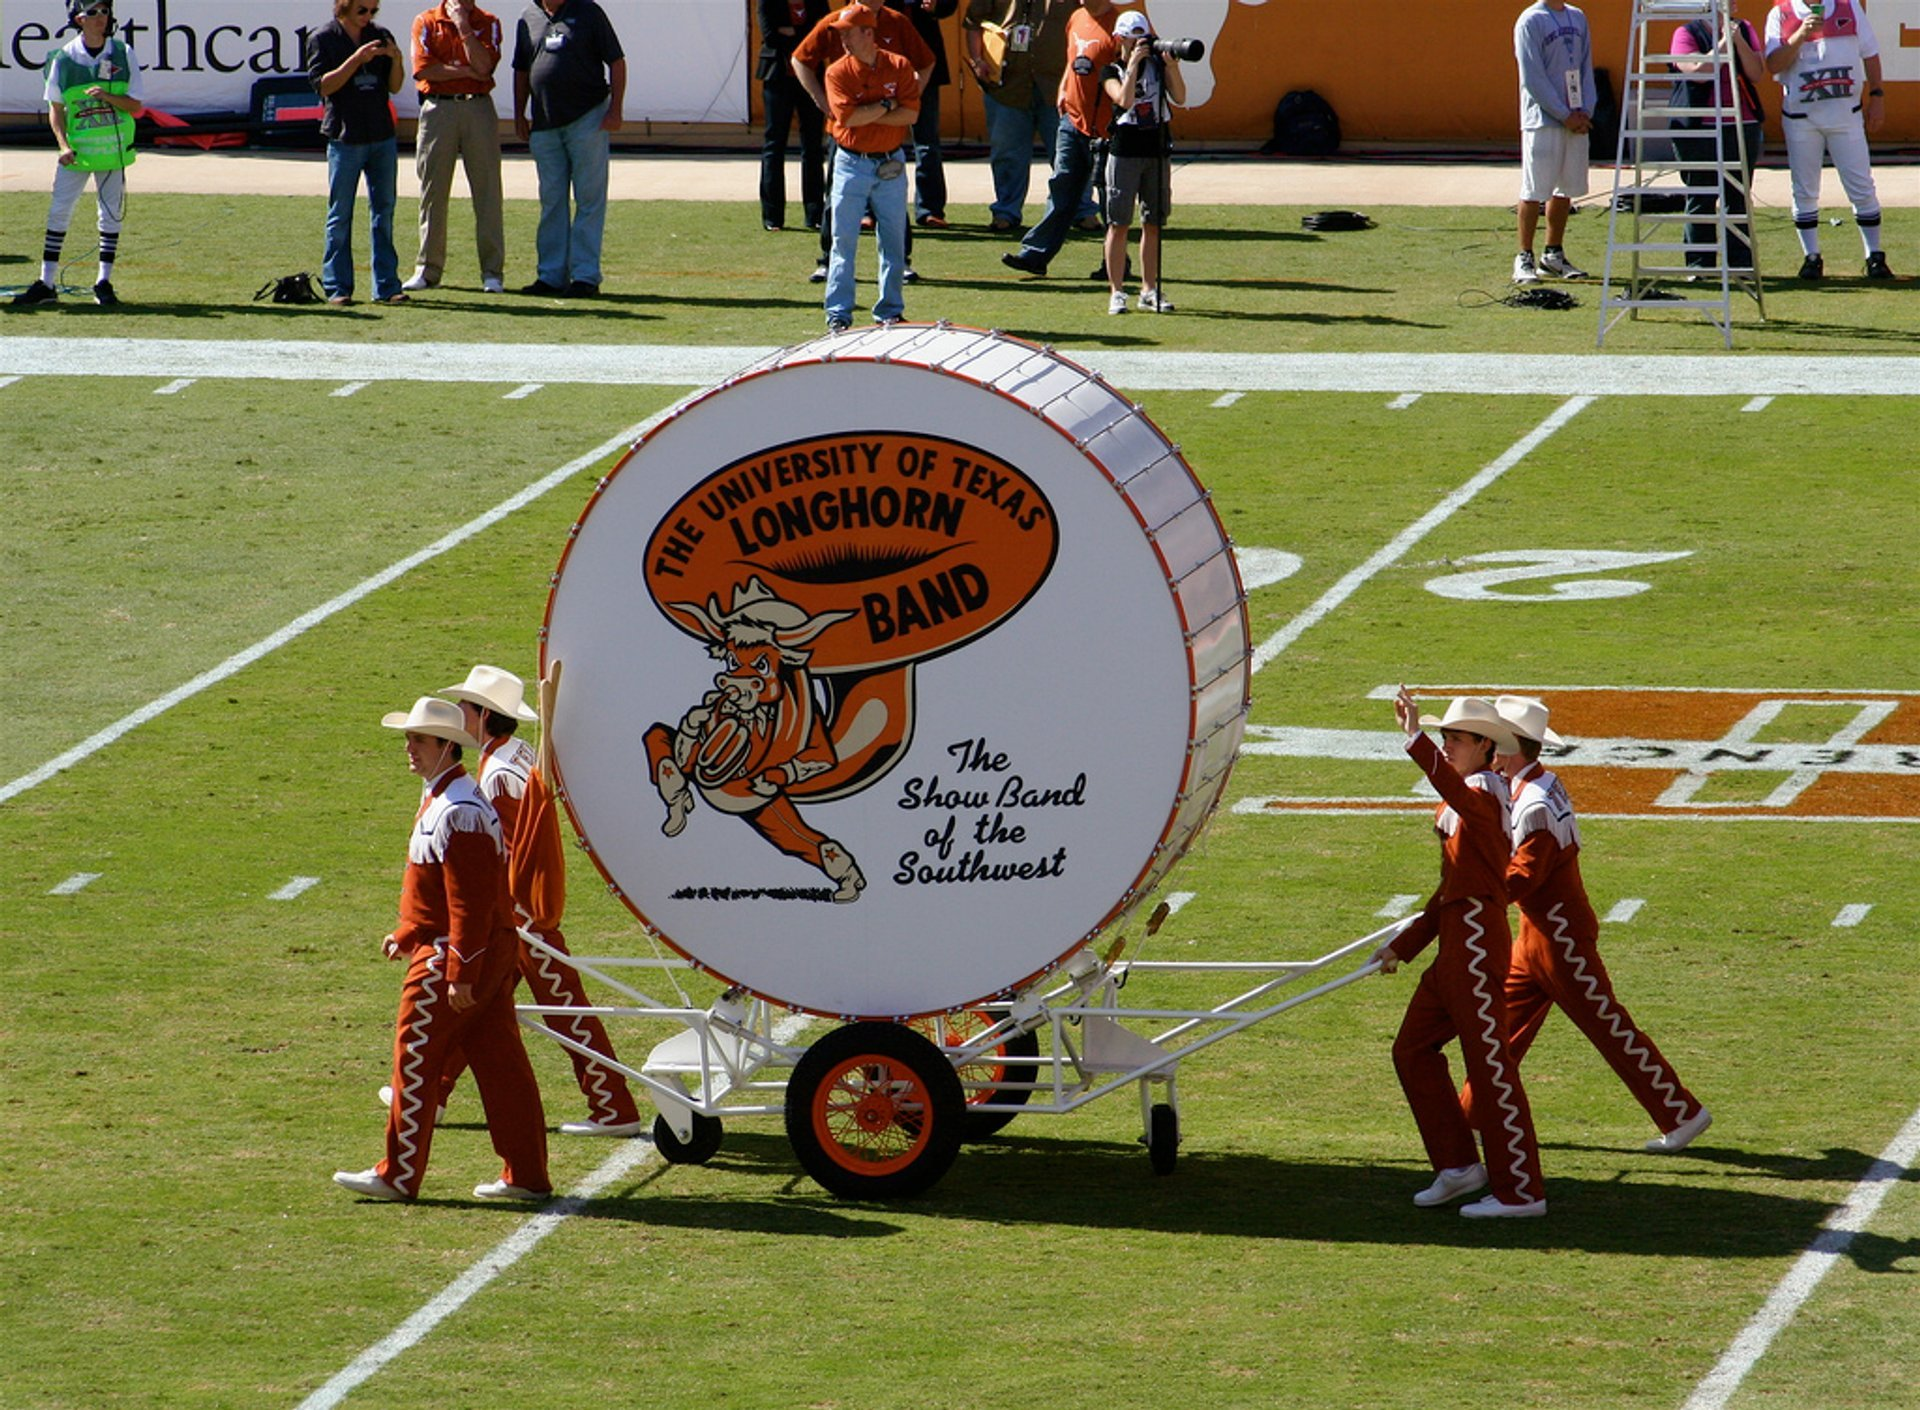 UT band rolls out Big Bertha, Darrell K Royal - Texas Memorial Stadium in Austin 2020